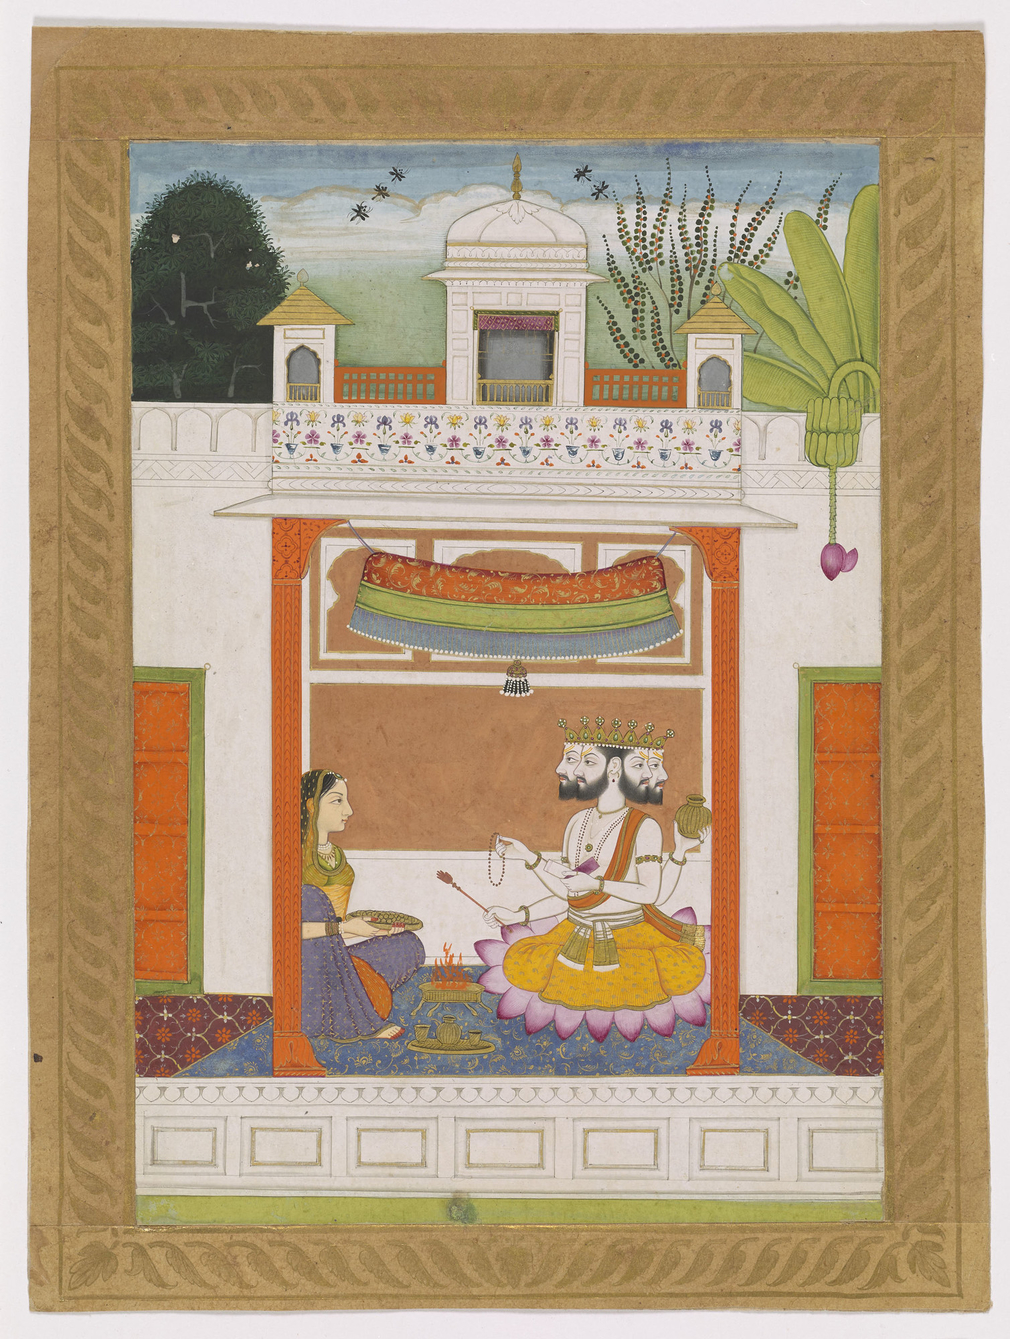 a lady performs a worship ritual before a figure of Brahma